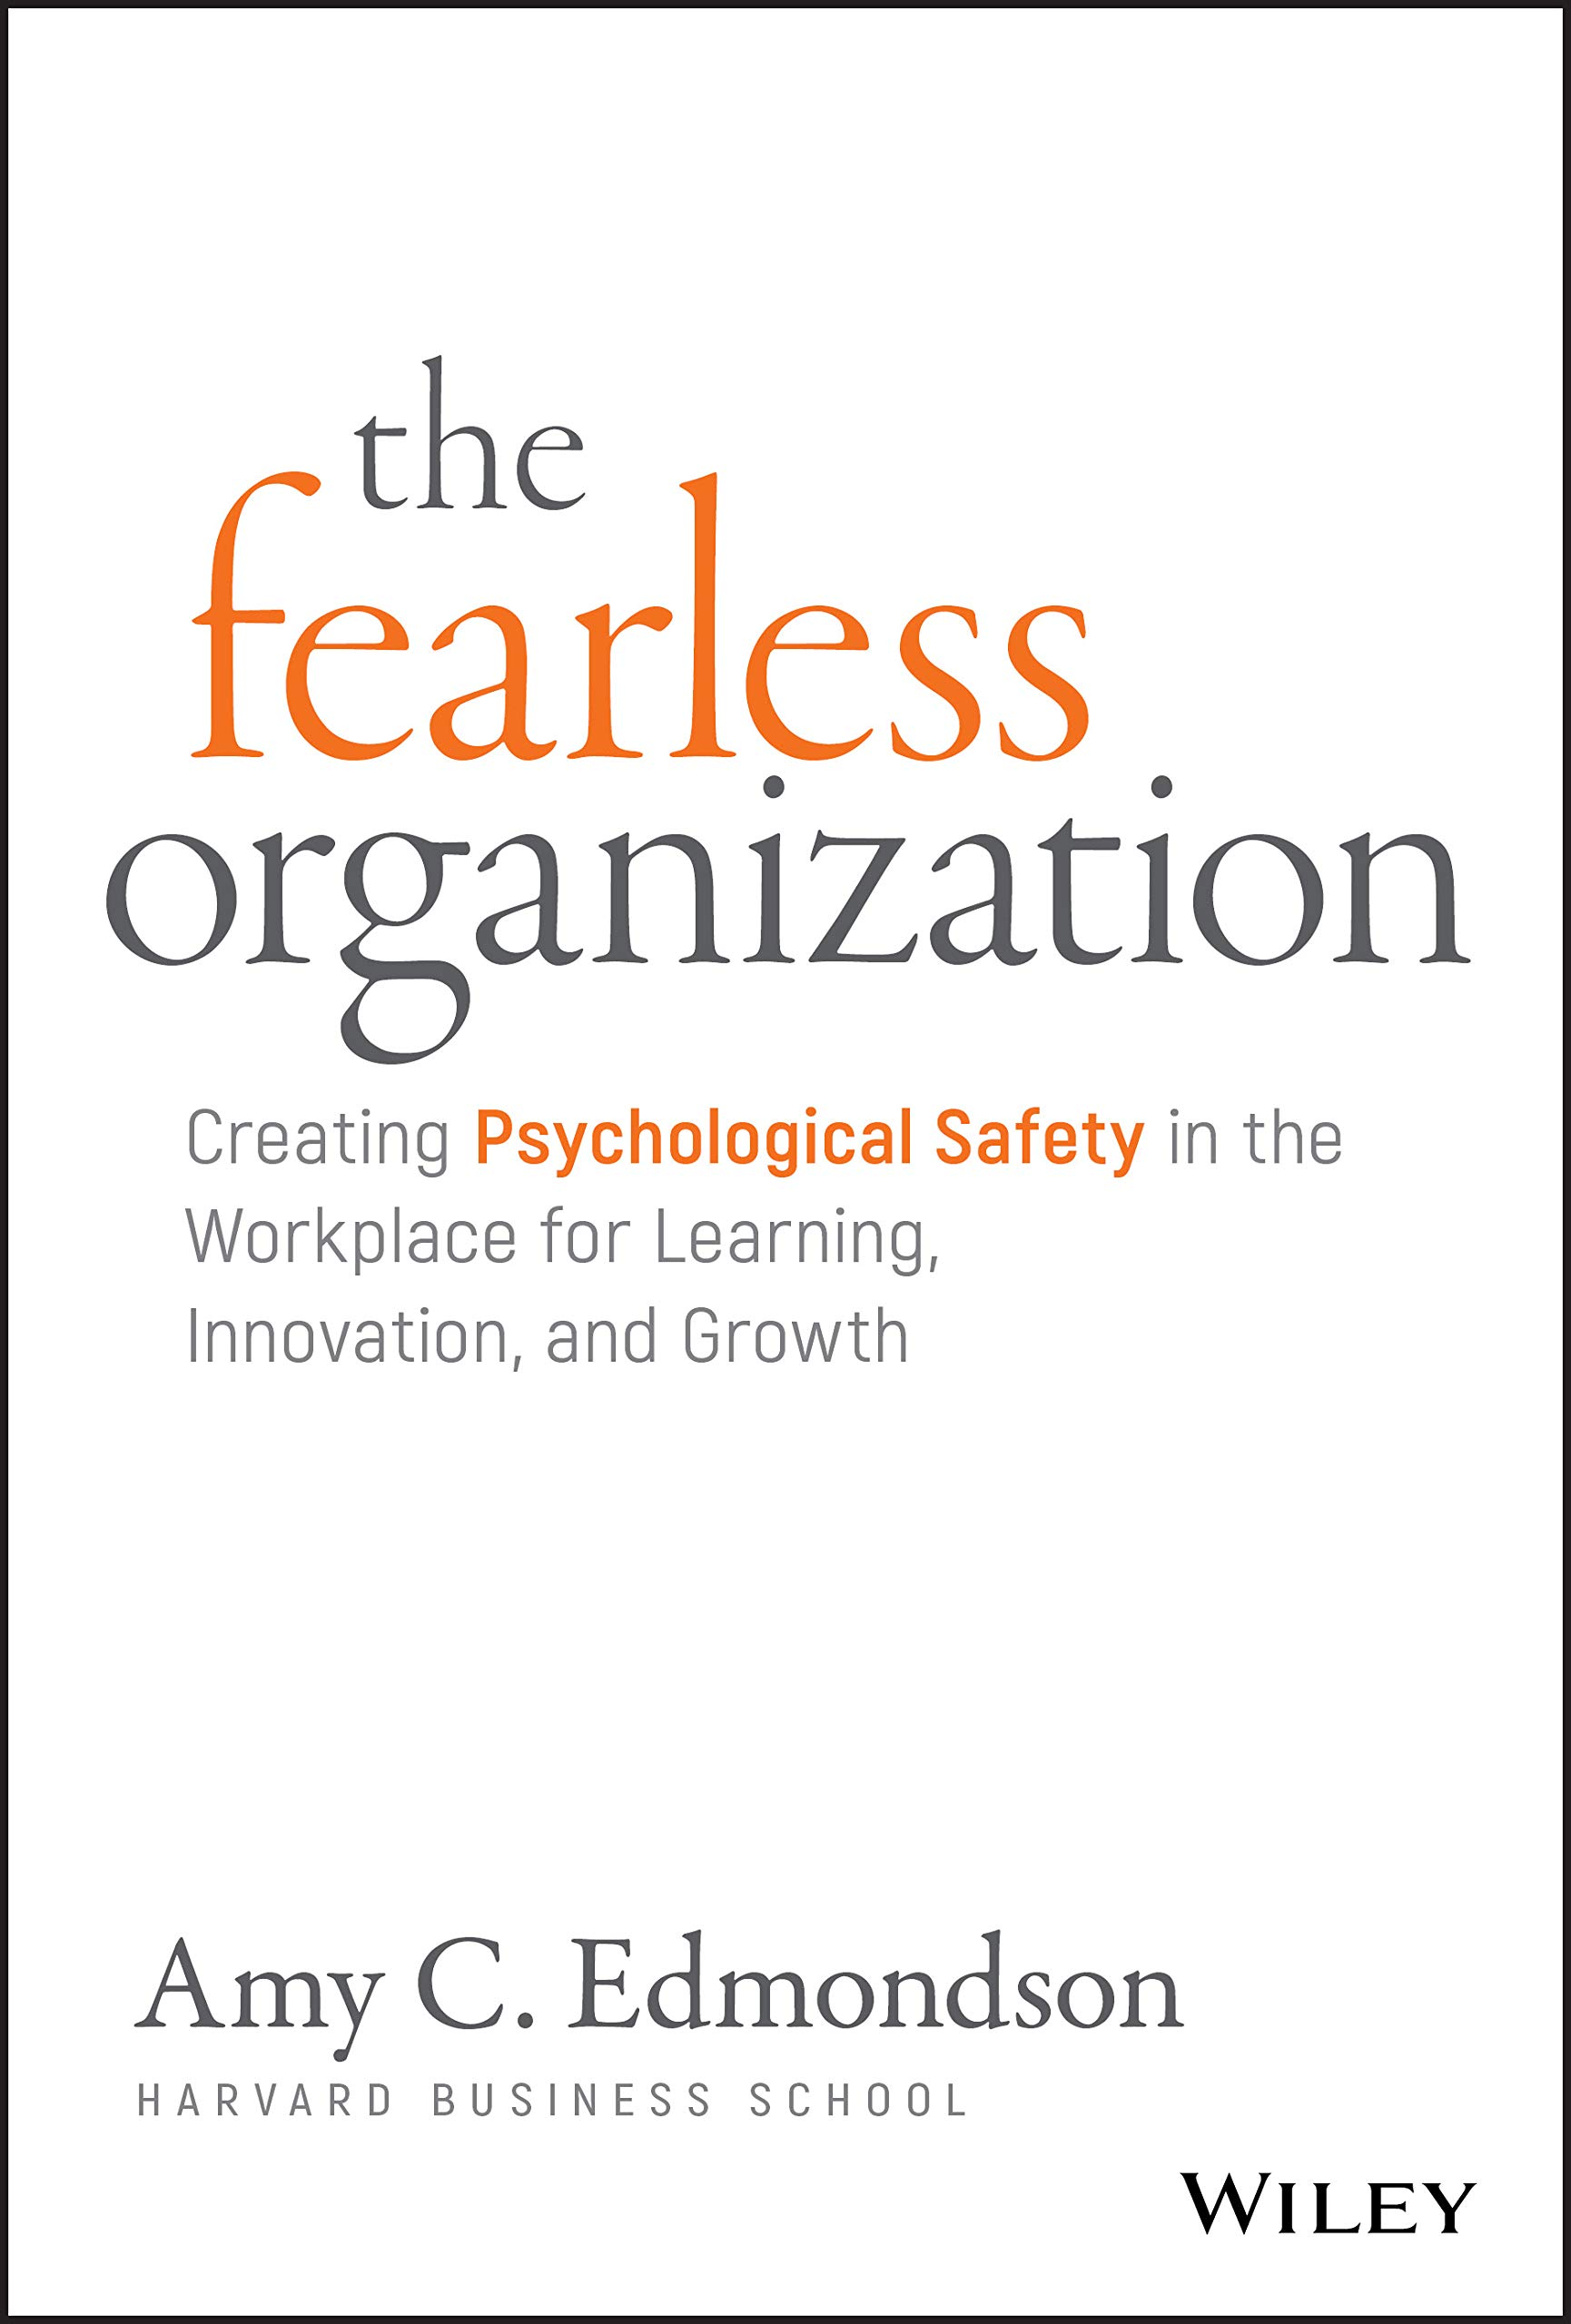 Download The Fearless Organization: Creating Psychological Safety In The Workplace For Learning, Innovation, And Growth 